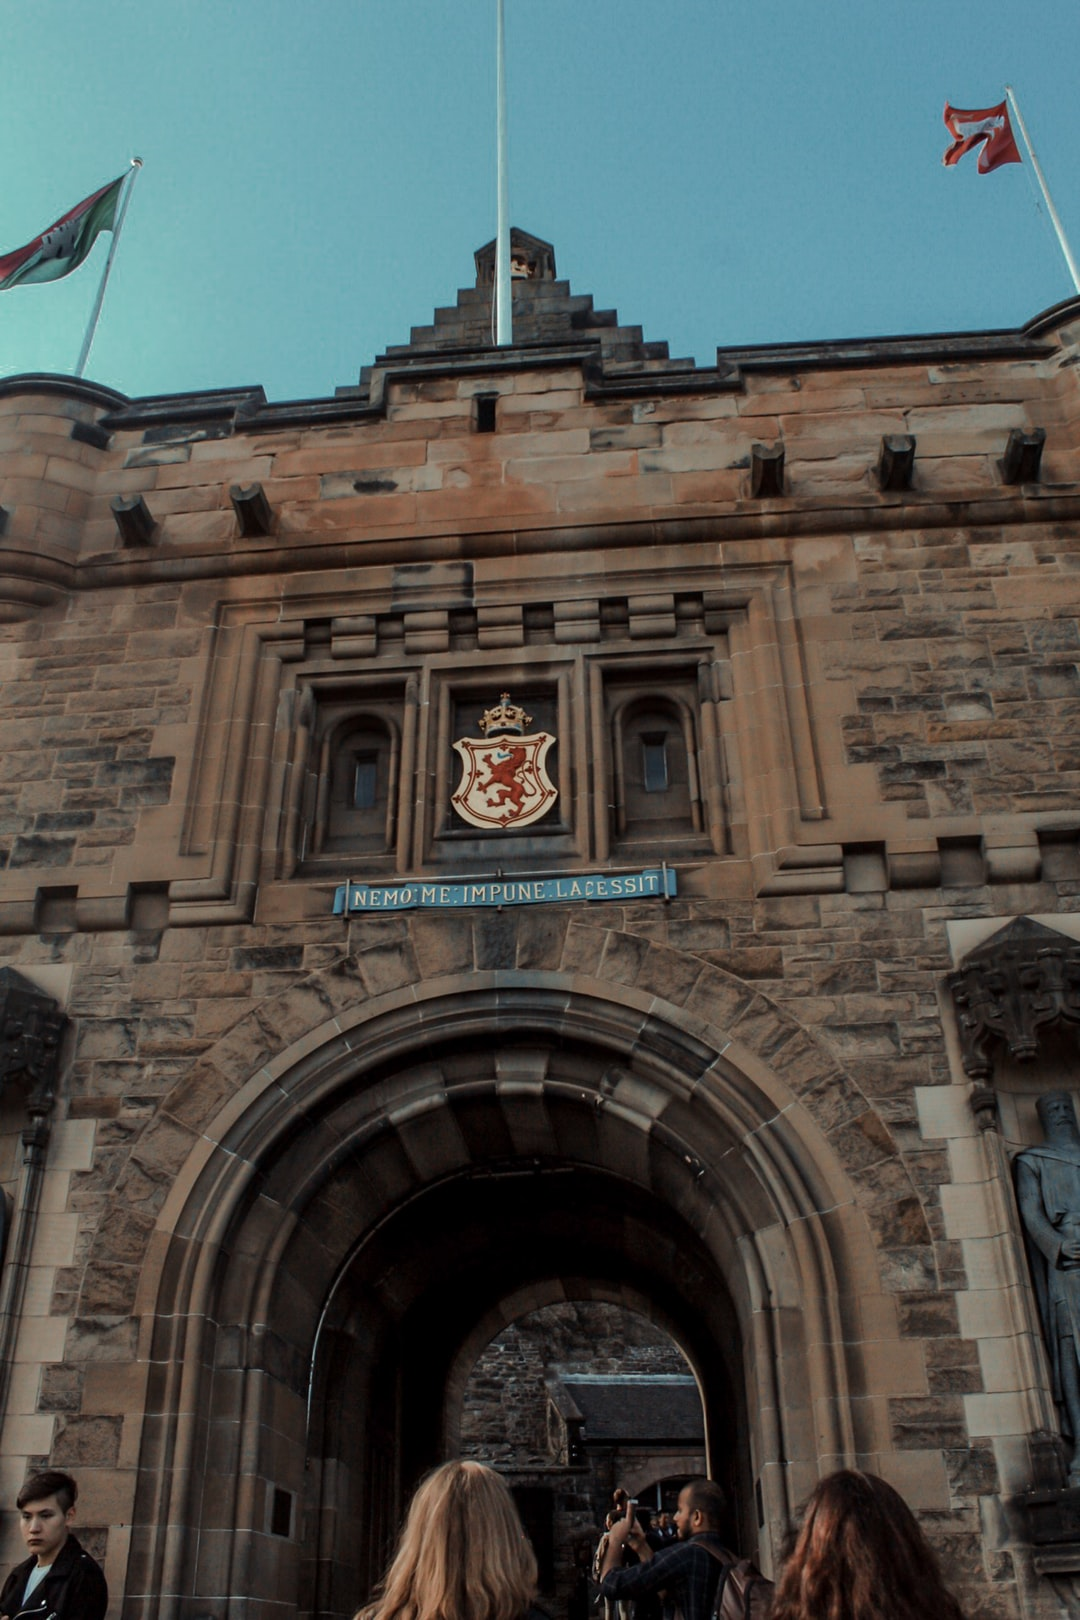 Edinburgh Castle front Gate Keep with Arch and Crest.